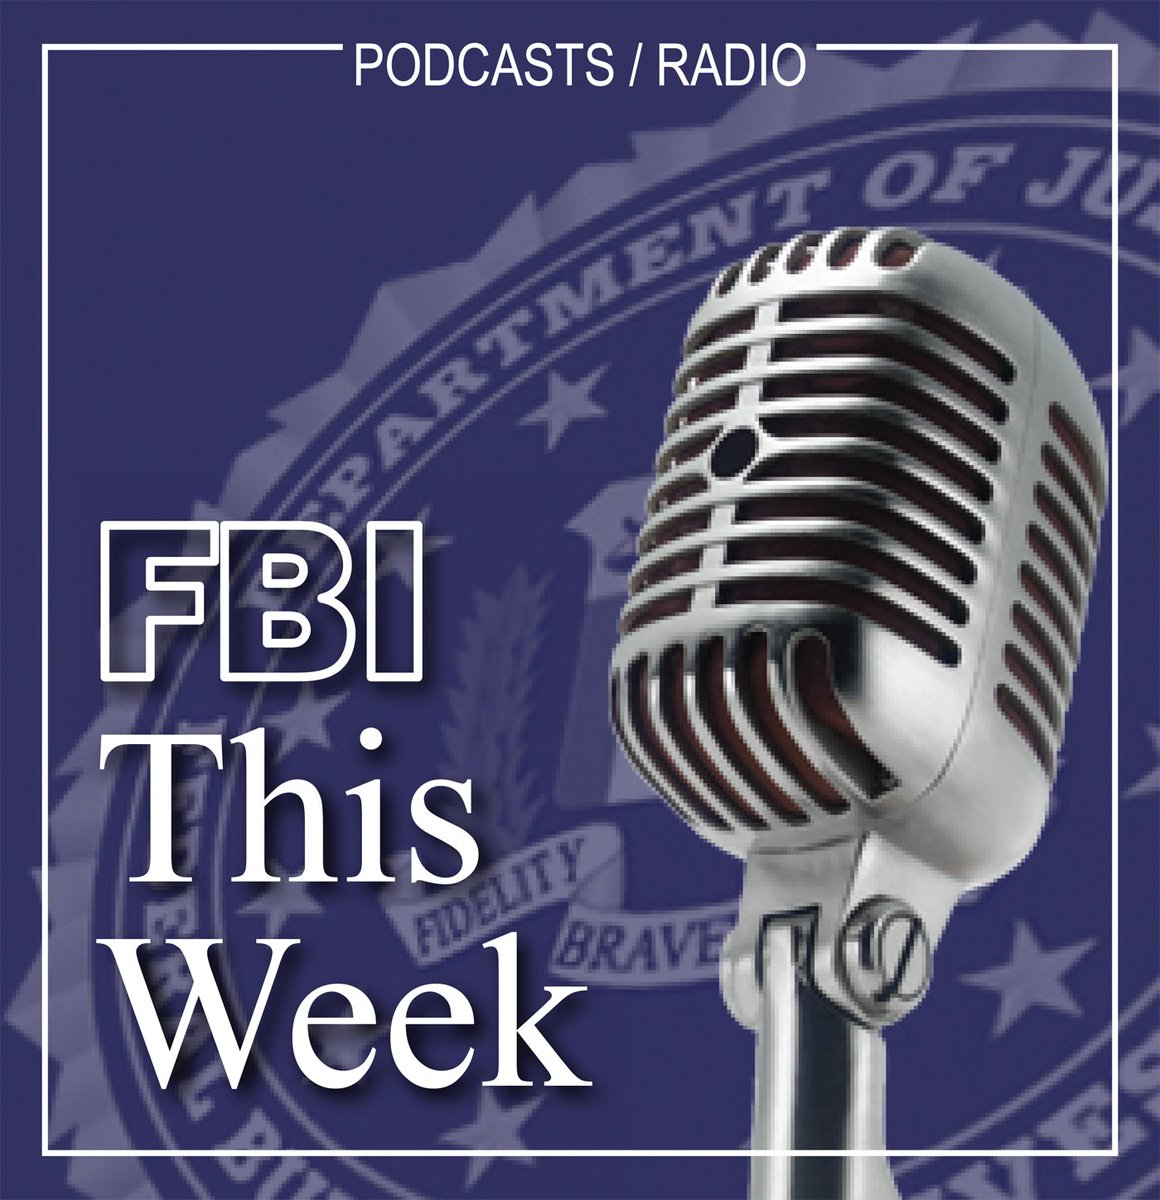 Listen to learn more about how the #FBI works with our private sector #partners fbi.gov/audio-reposito…